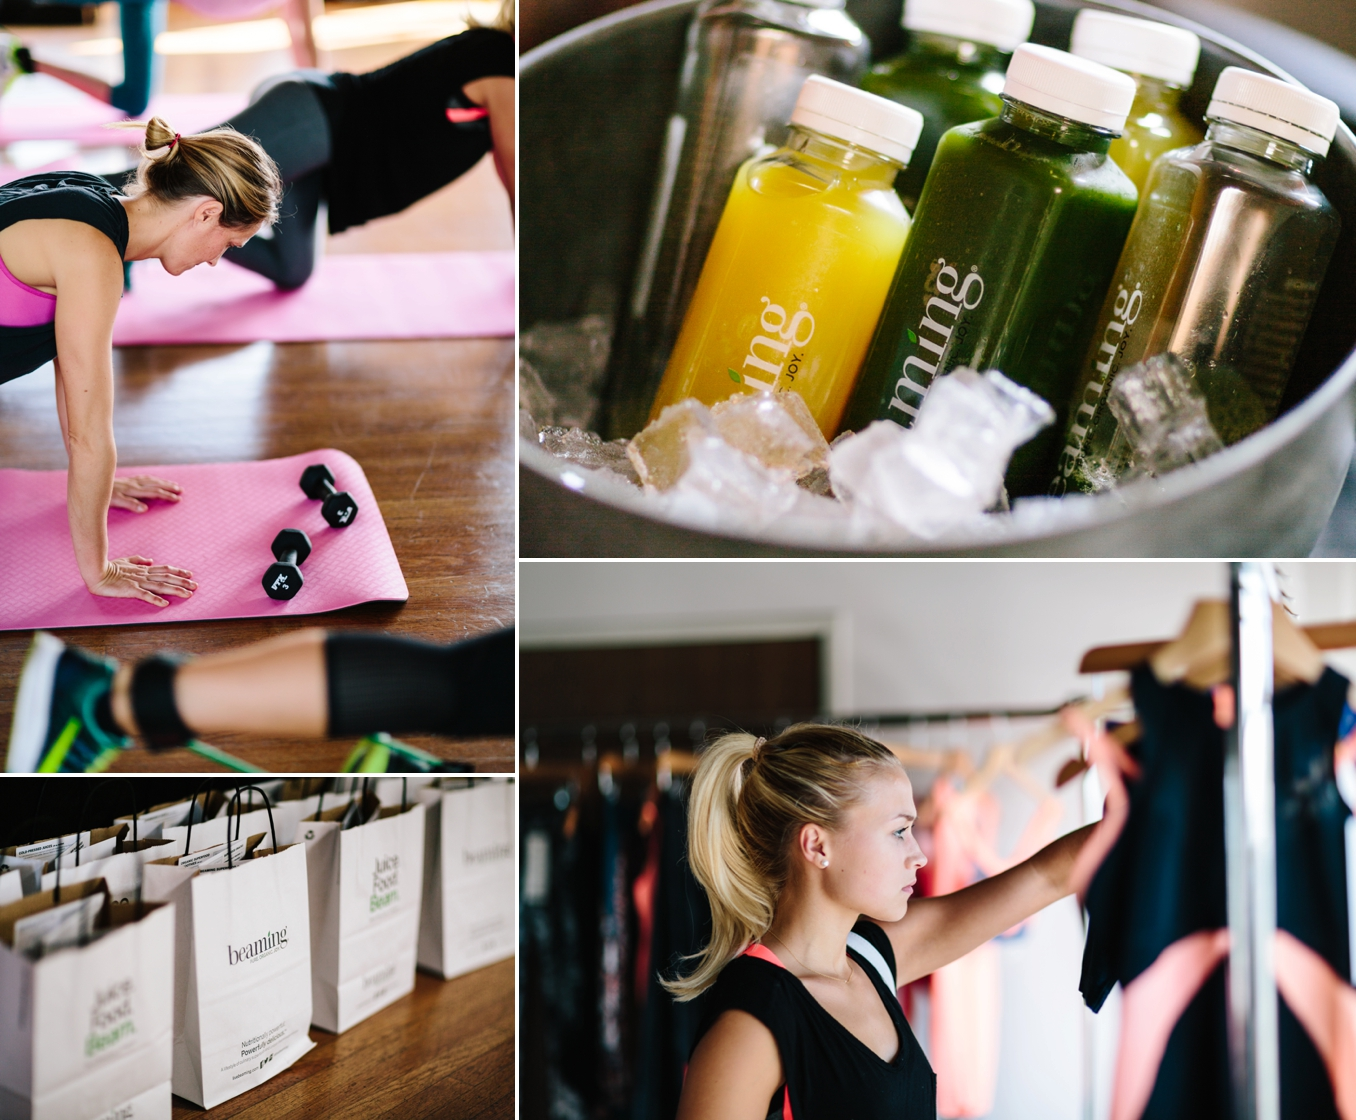 modelFIT LA popup at Catchlight Studios with Sweaty Betty and Fiji photos by STUDIO 1208